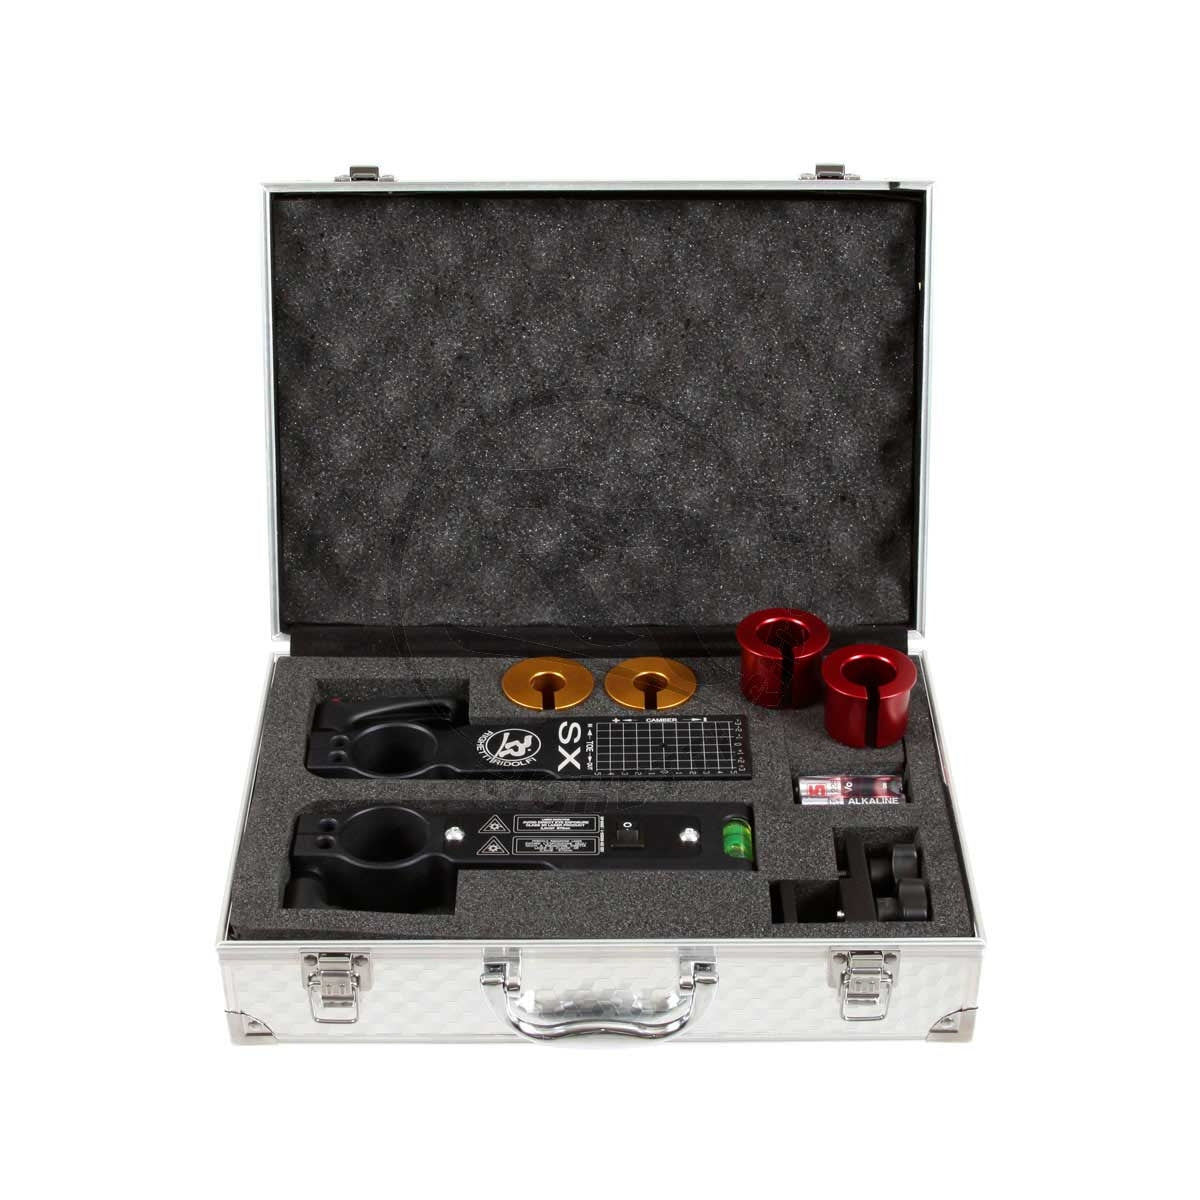 RIGHETTI RIDOLFI KIT LASER FOR WHEELS CONVERGENCE D.17/25